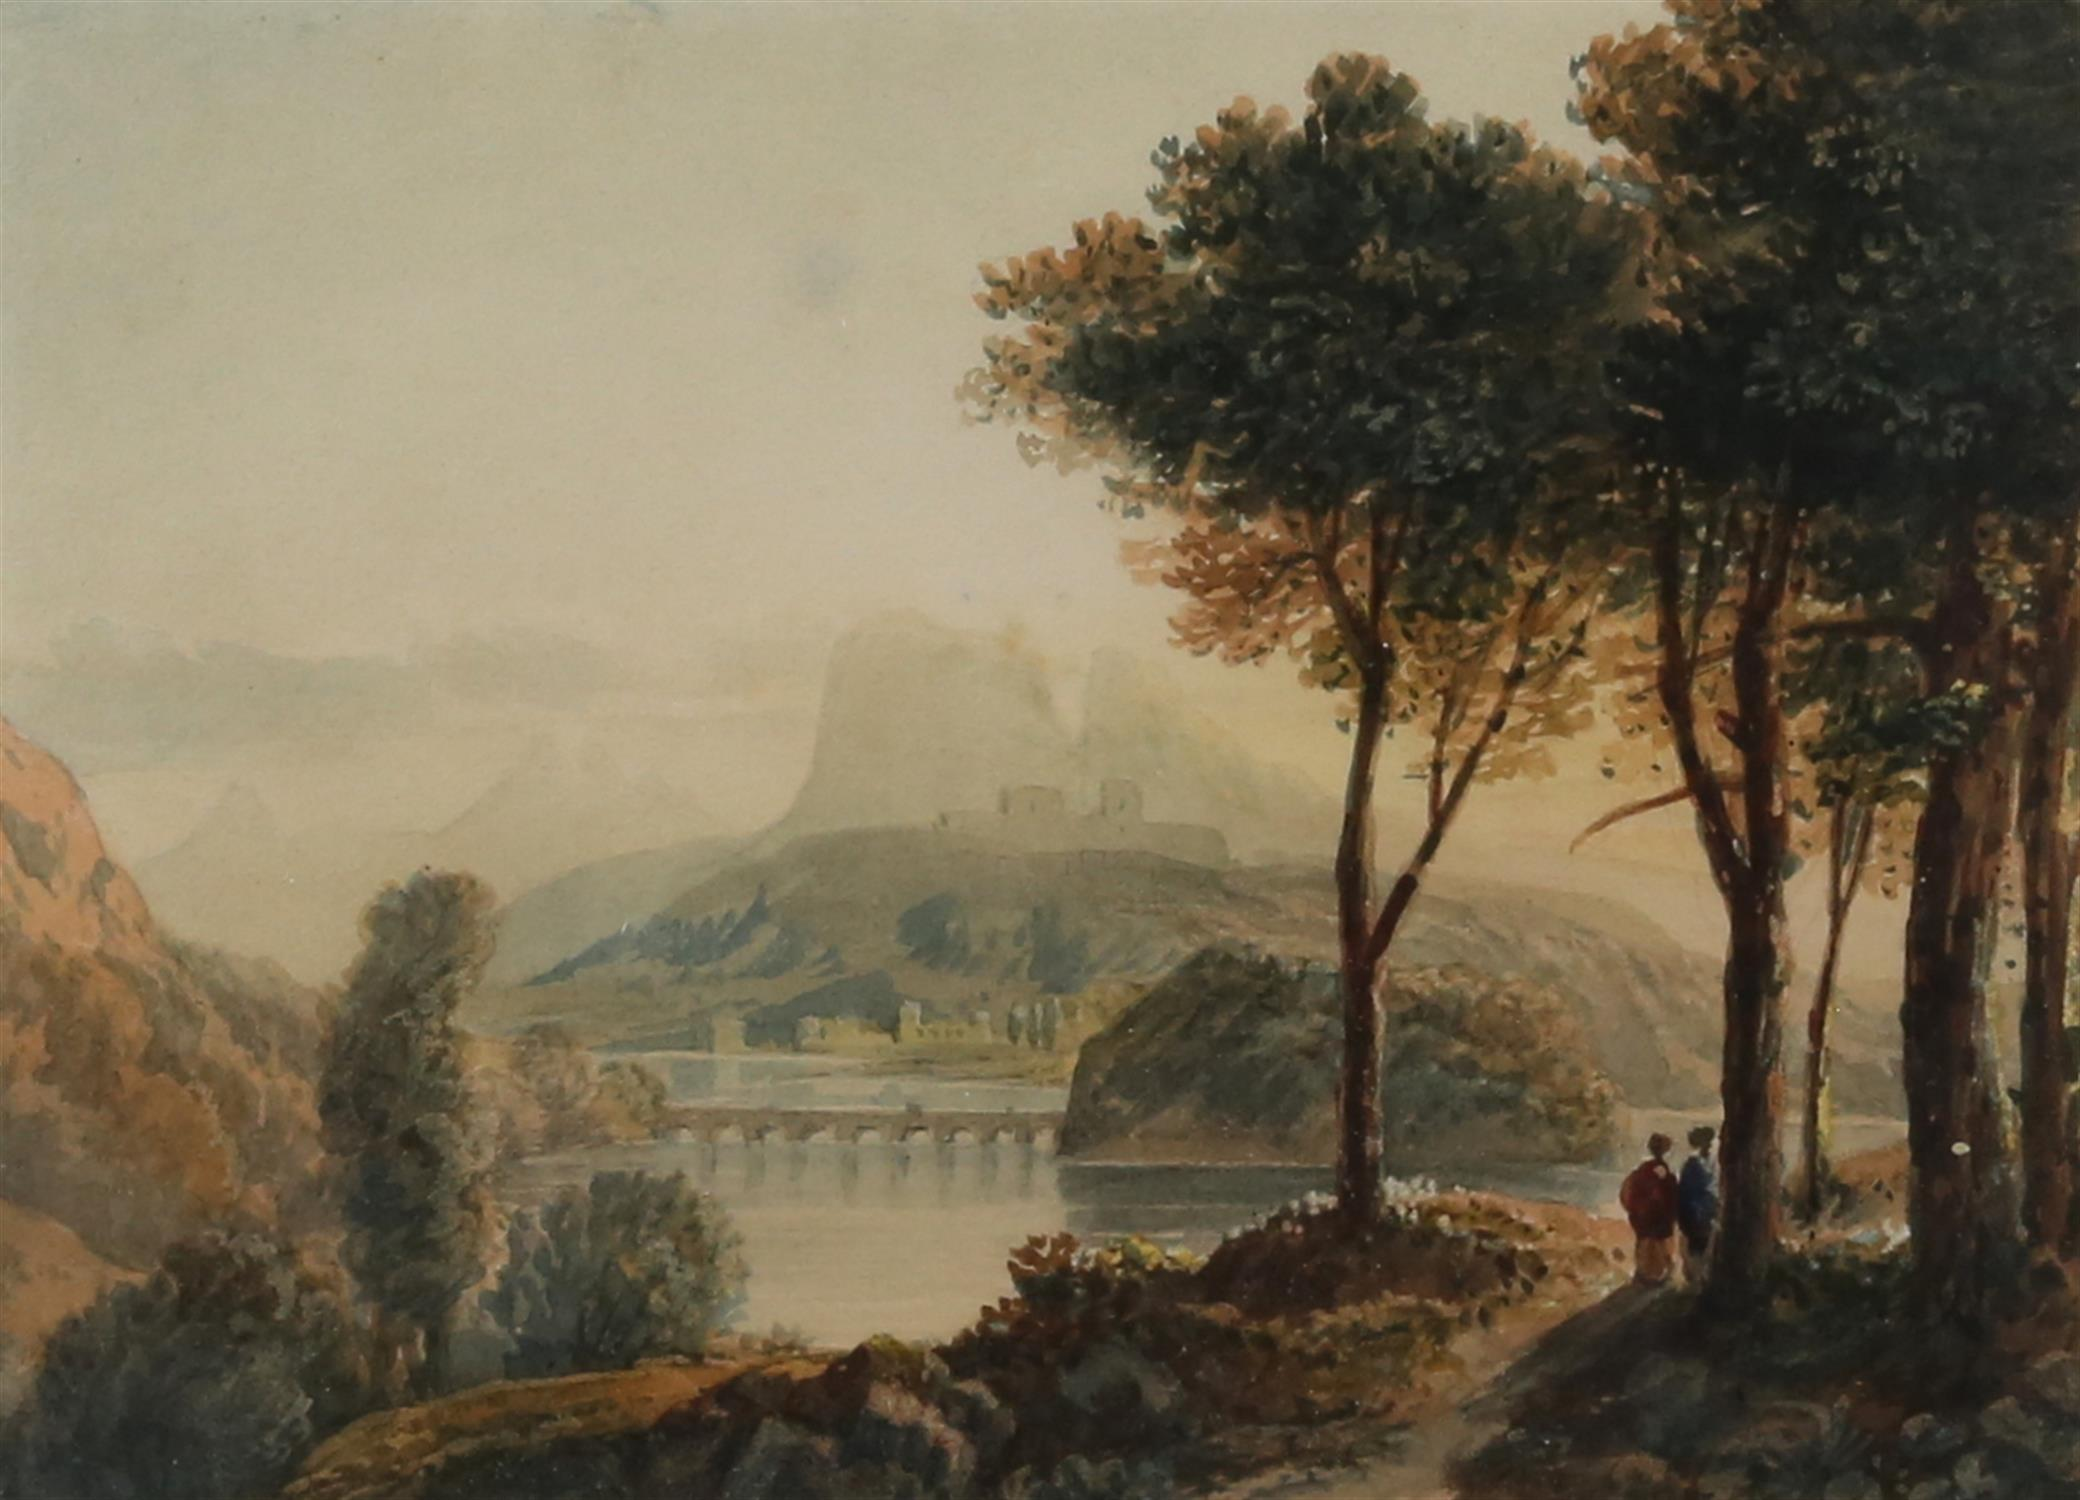 Circle of Francis Oliver Finch (British, 1802-1862), classical landscape with figures on a path in